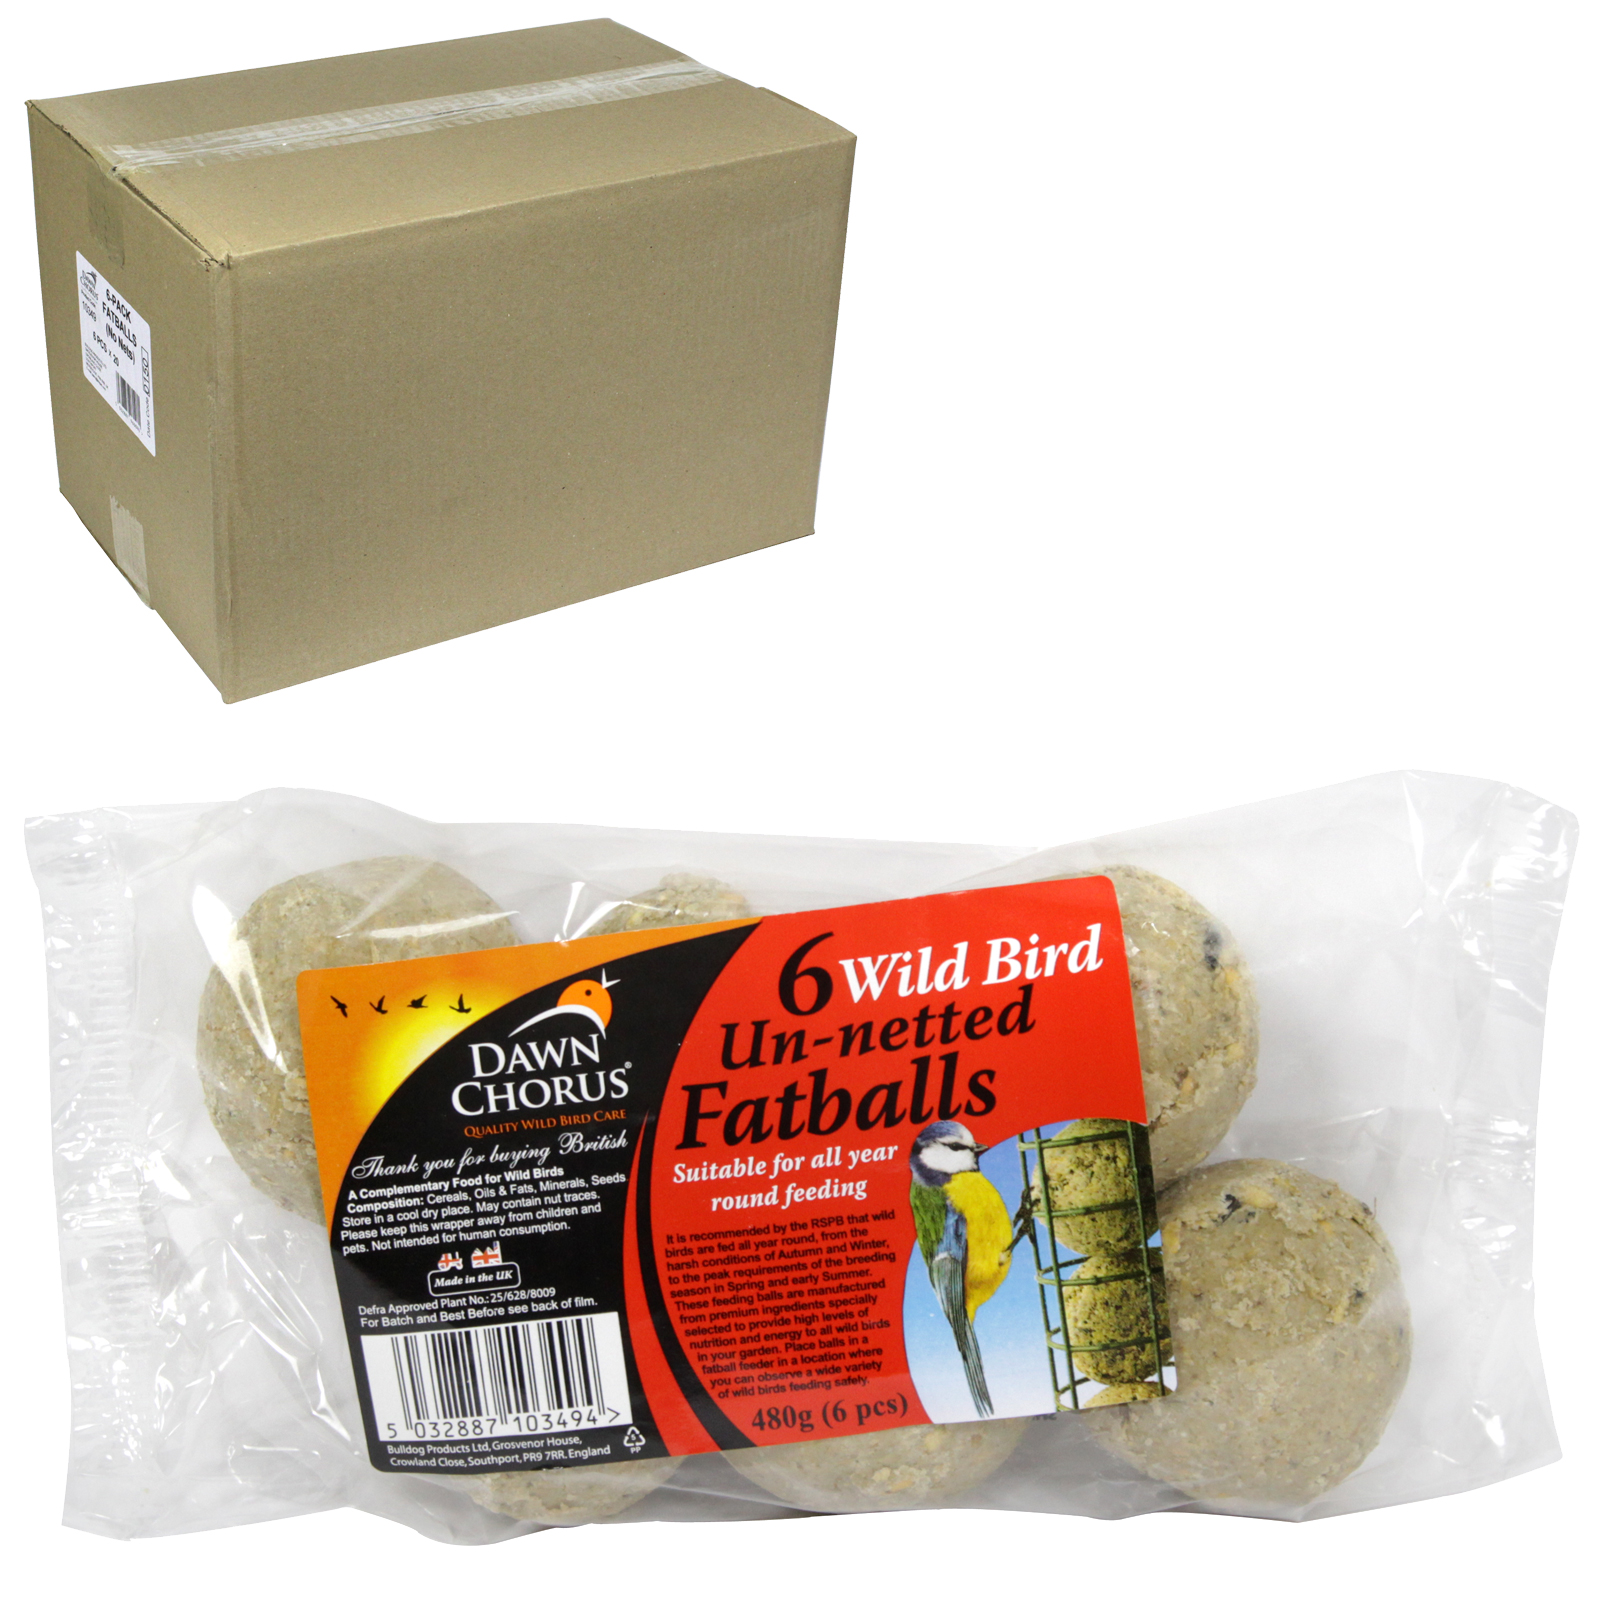 DAWN CHORUS BIRD SEED FAT BALLS 6PK UN-NETTED X20